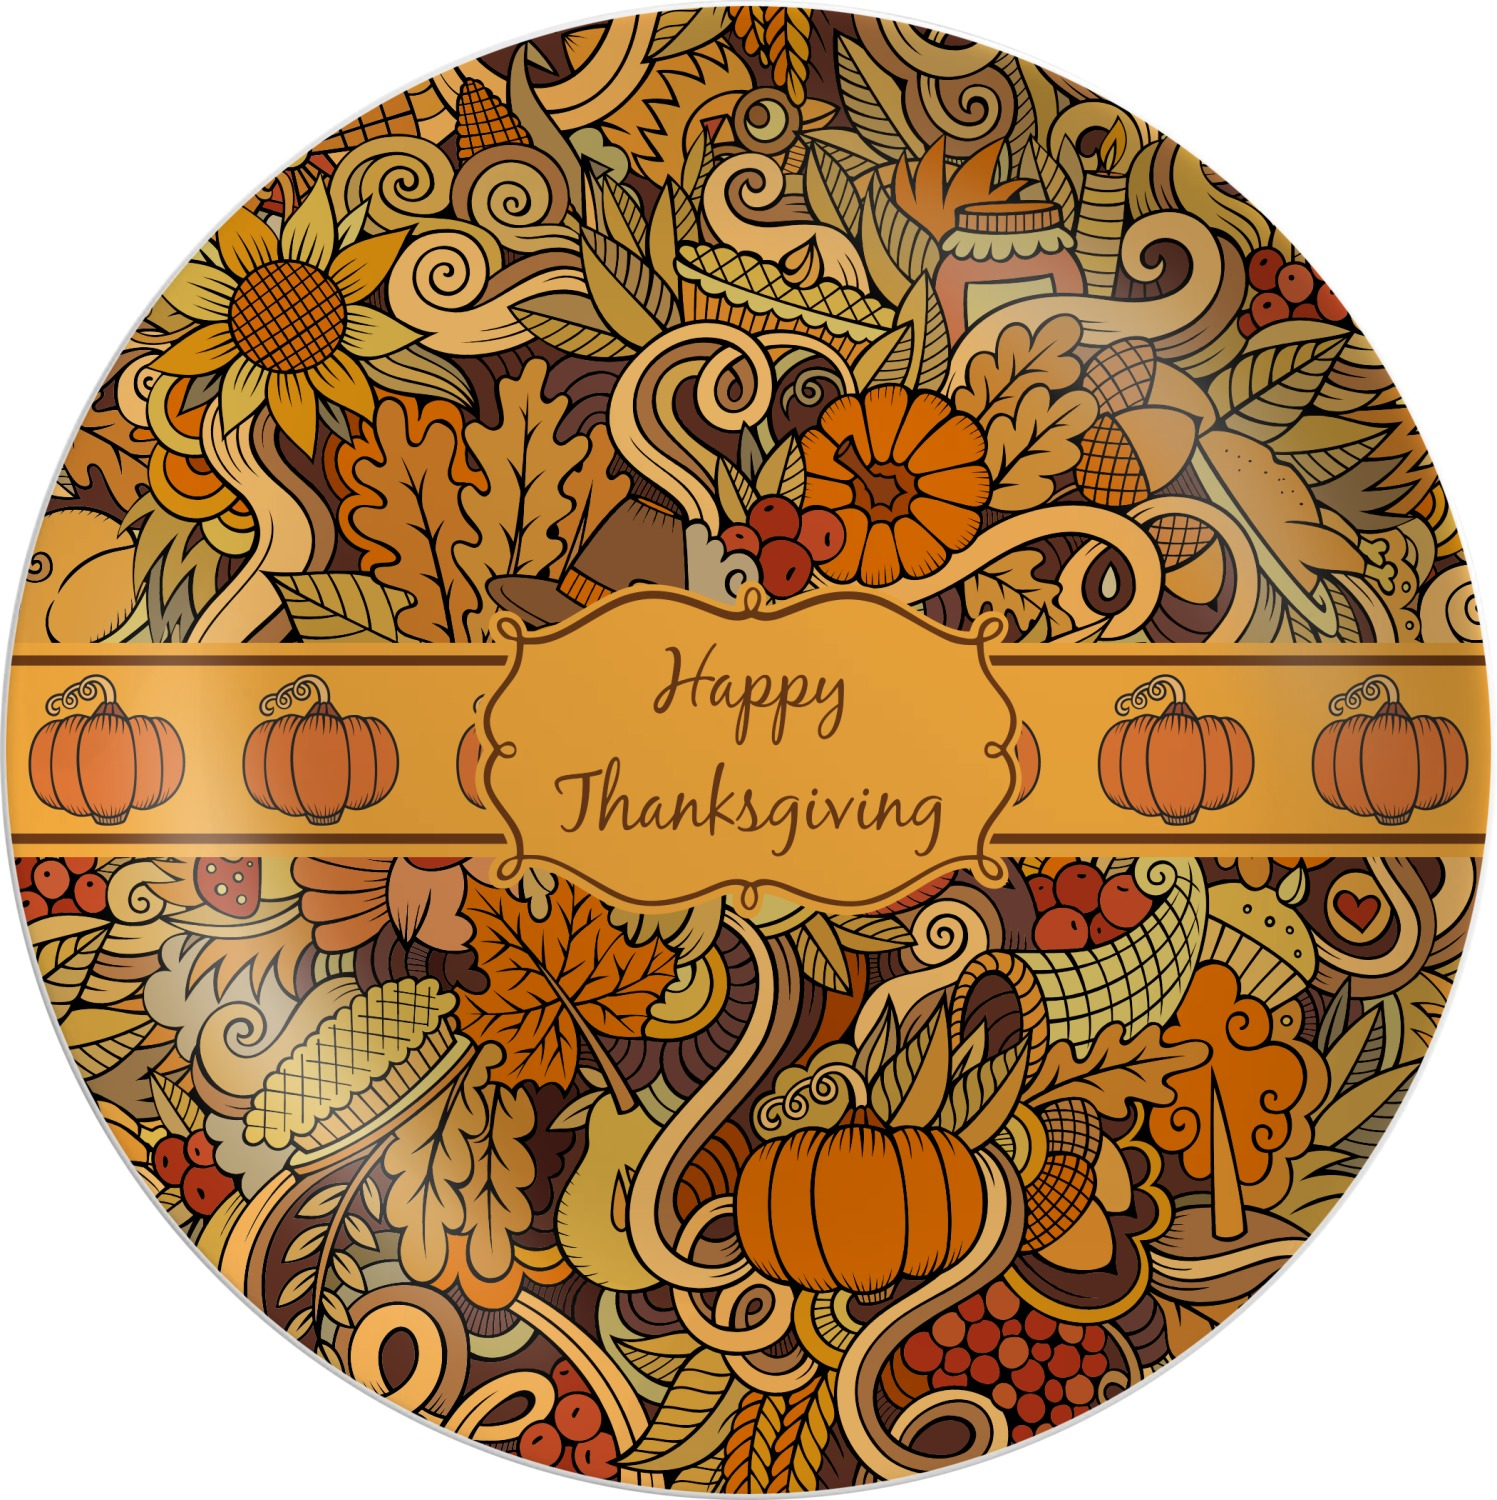 Thanksgiving Melamine Plate (Personalized)